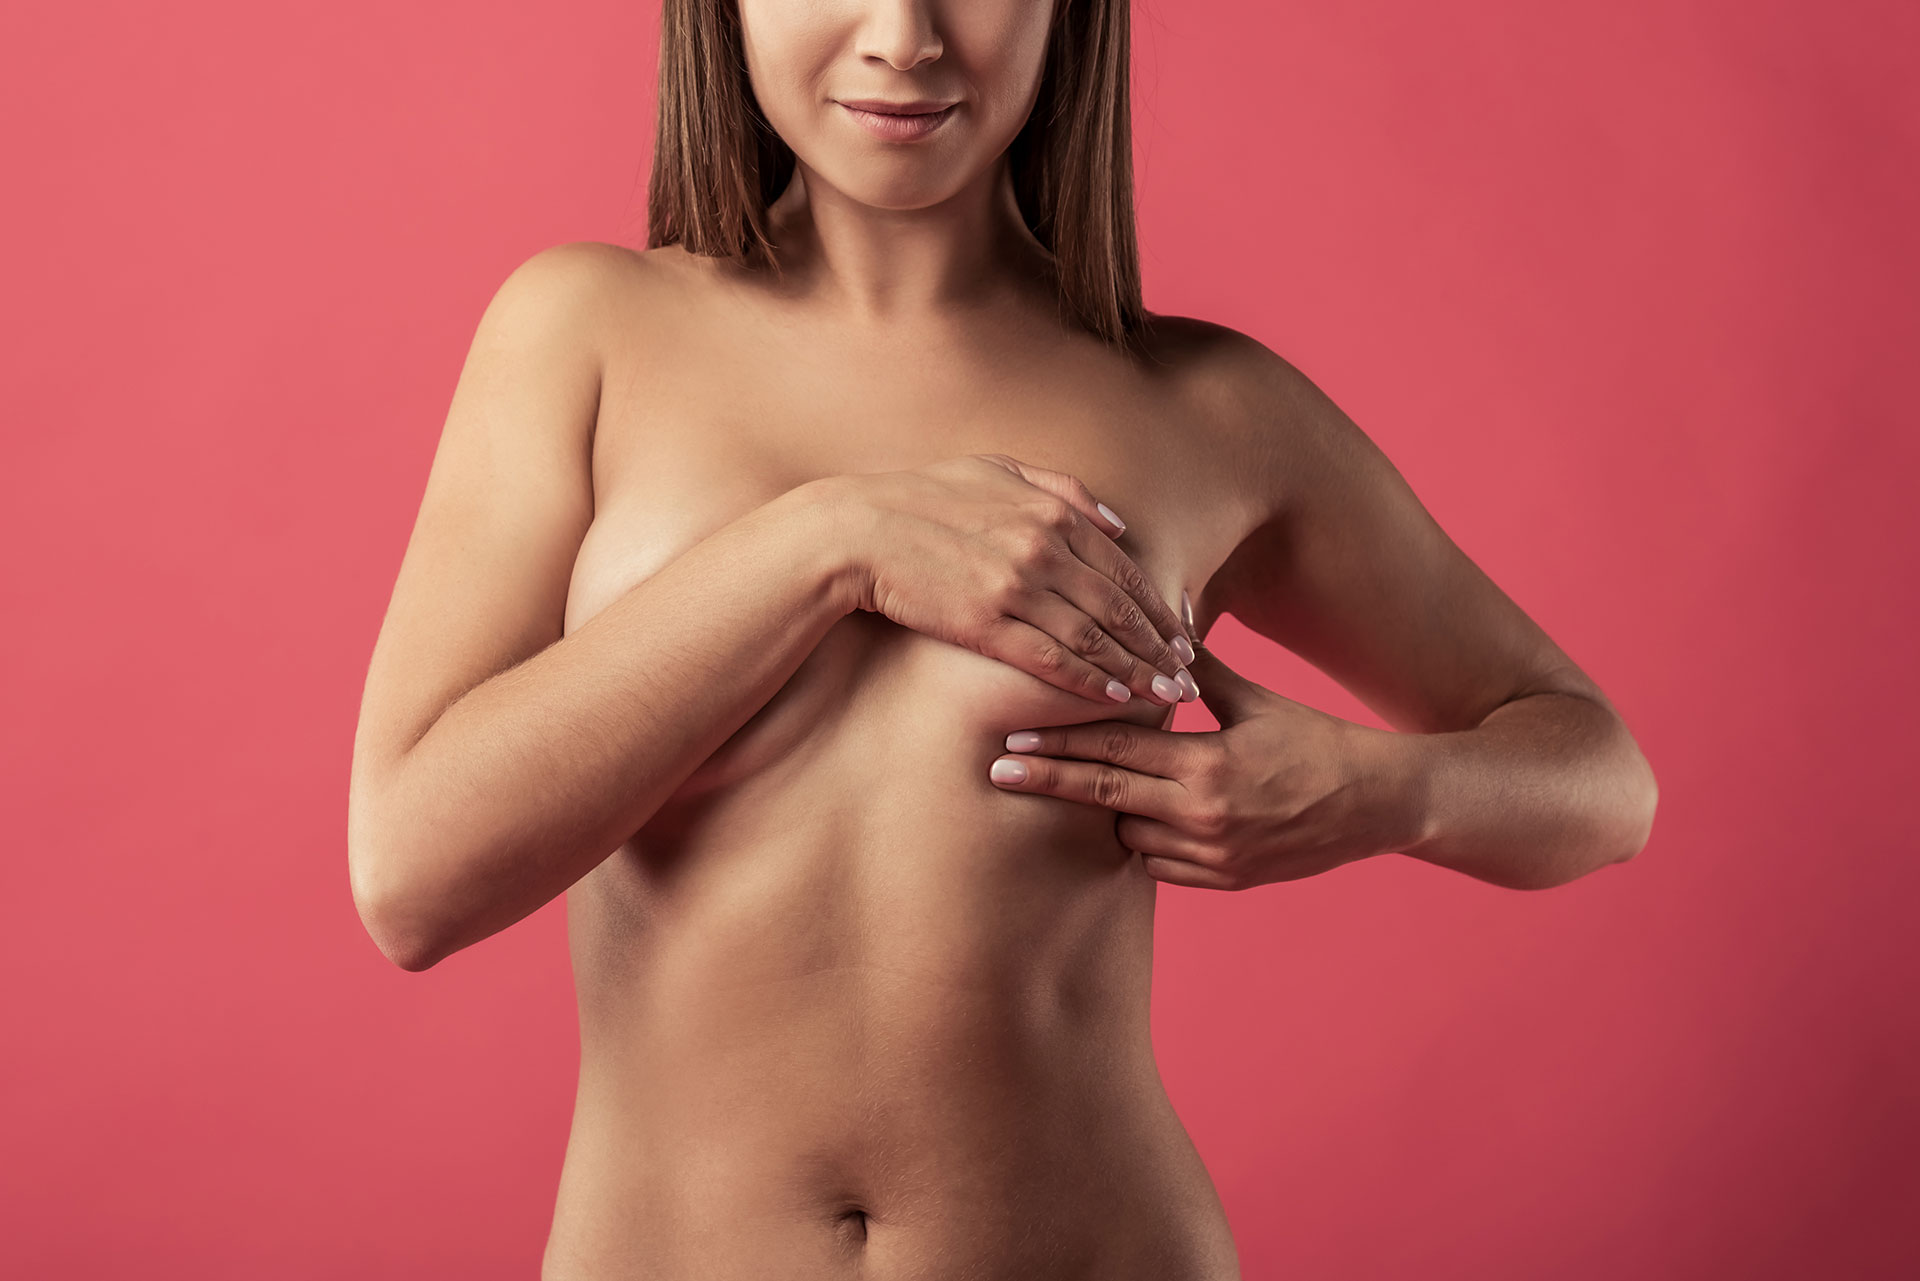 Is it Possible to Have a Safe Breast Enhancement Surgery?